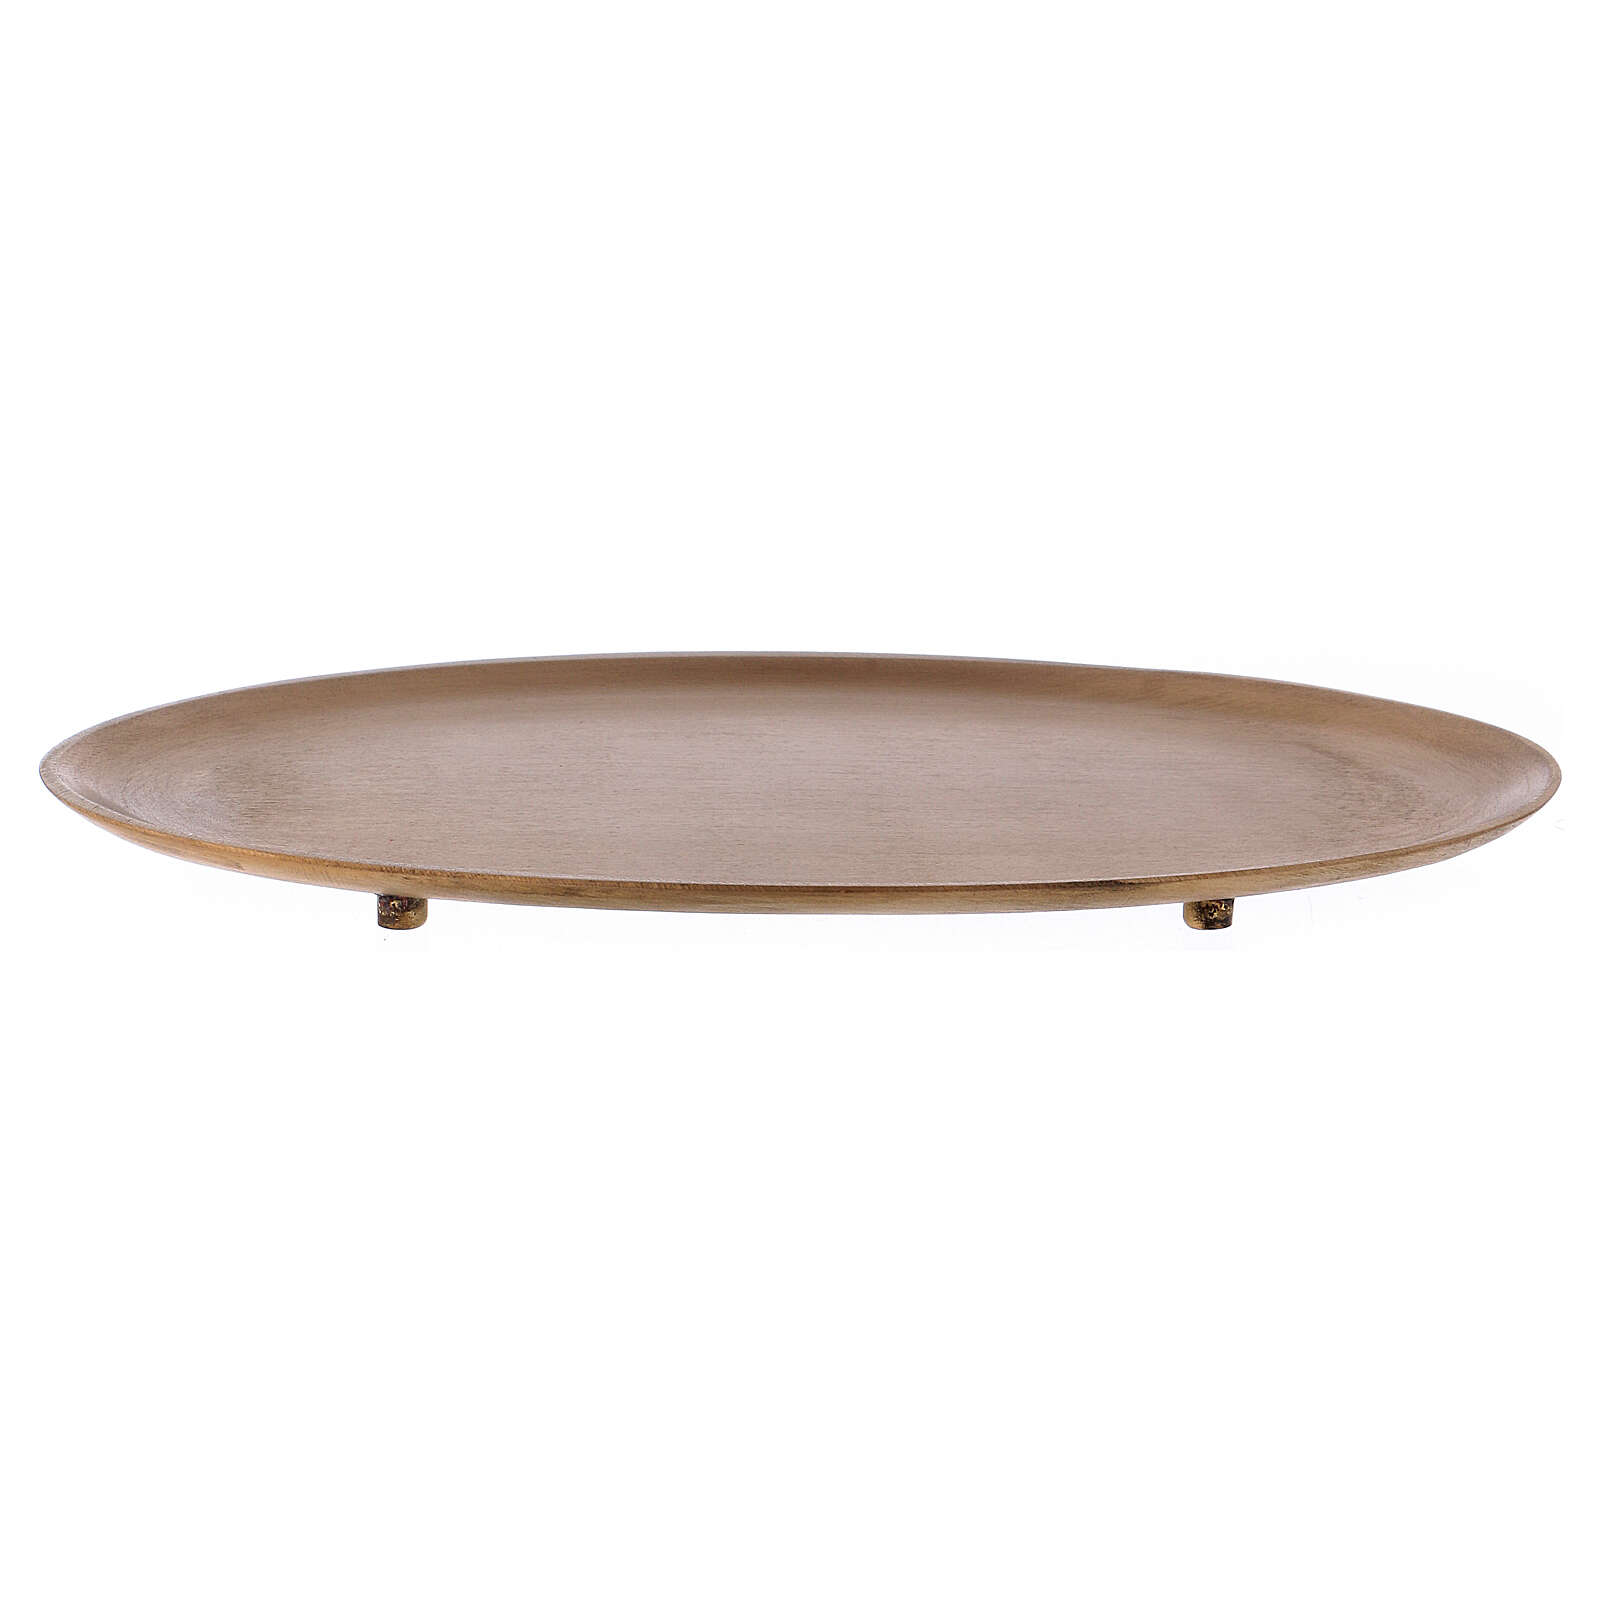 Oval candle holder in gold plated brass with satin finish 3